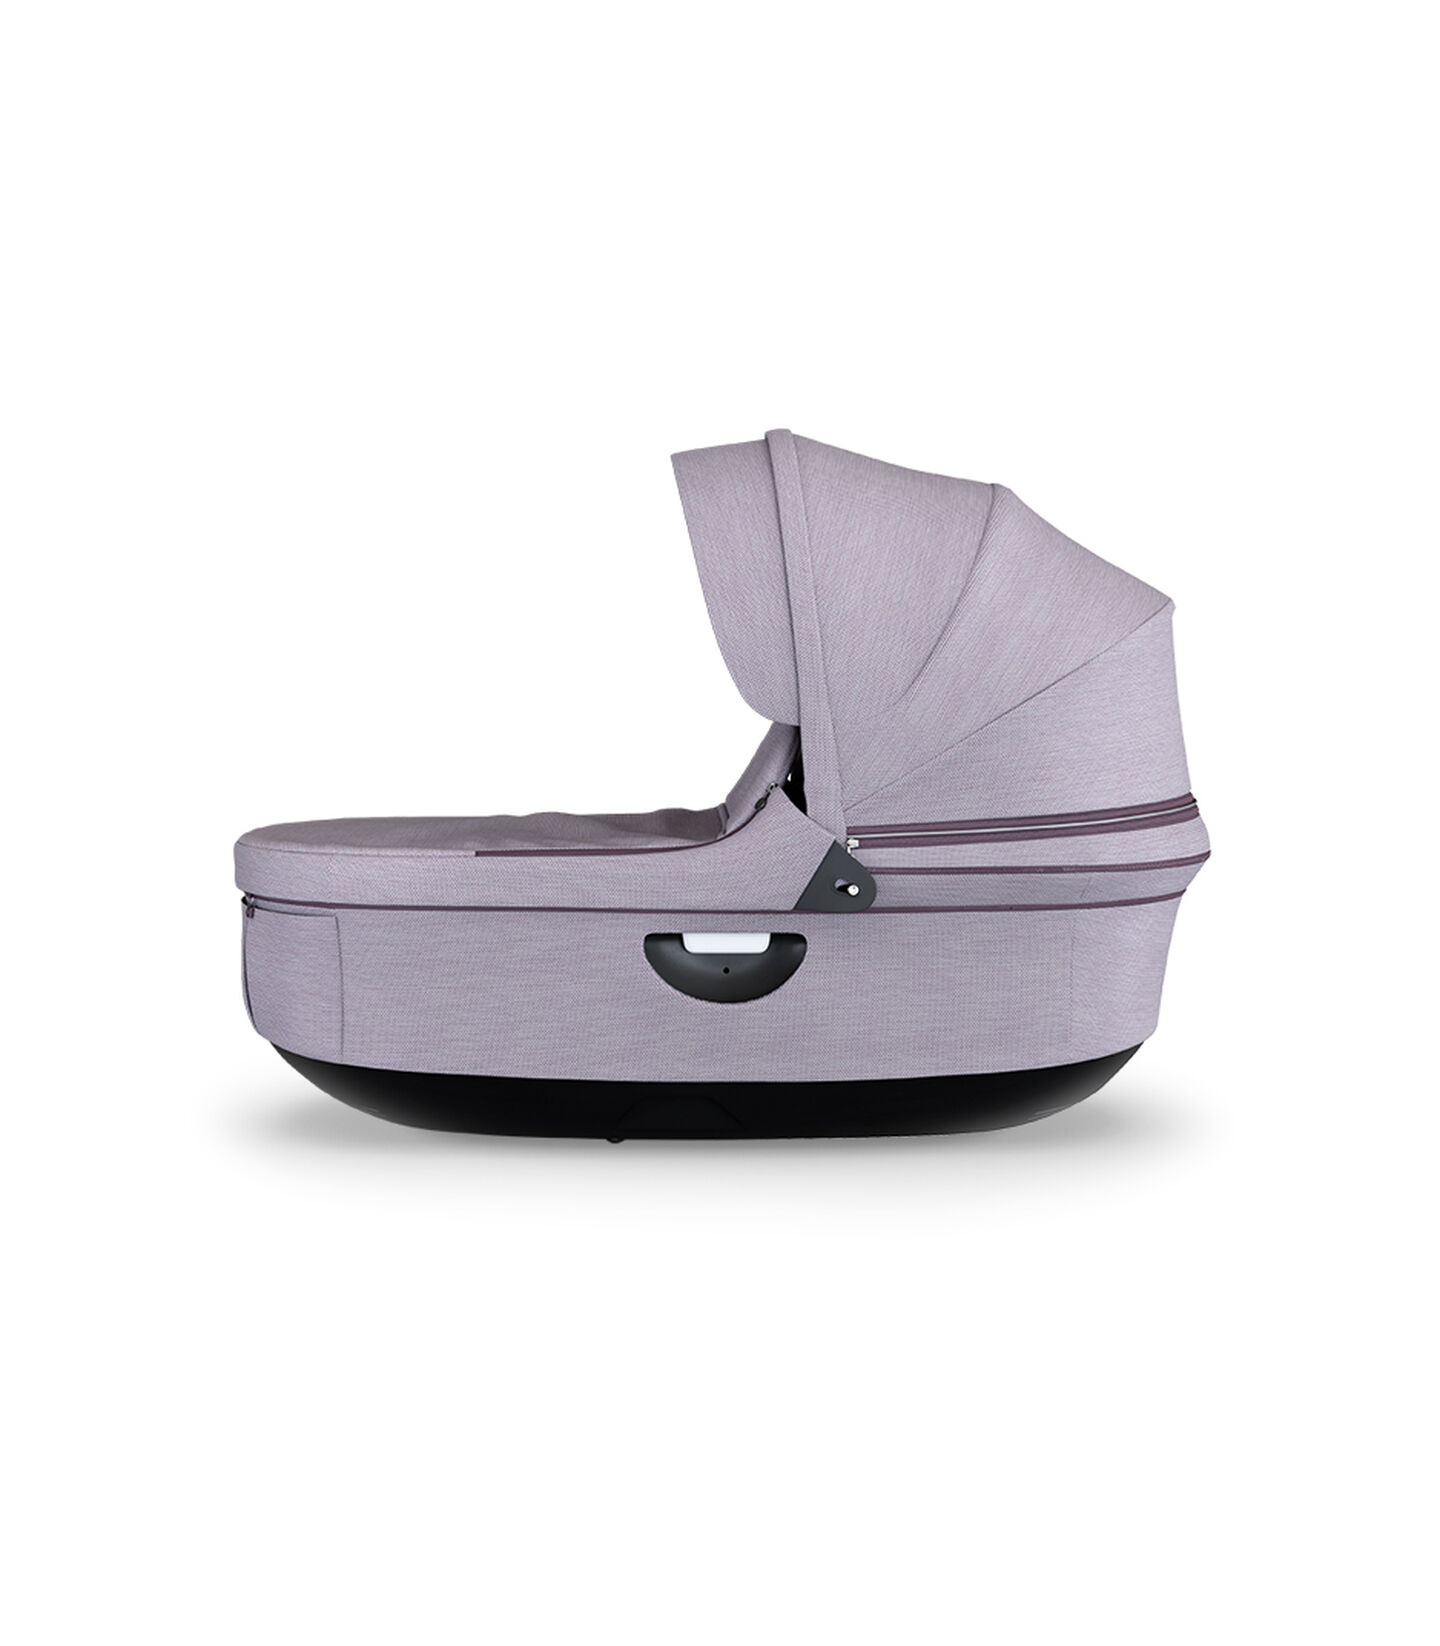 Stokke® Stroller Black Carry Cot Brushed Lilac, Brushed Lilac, mainview view 1